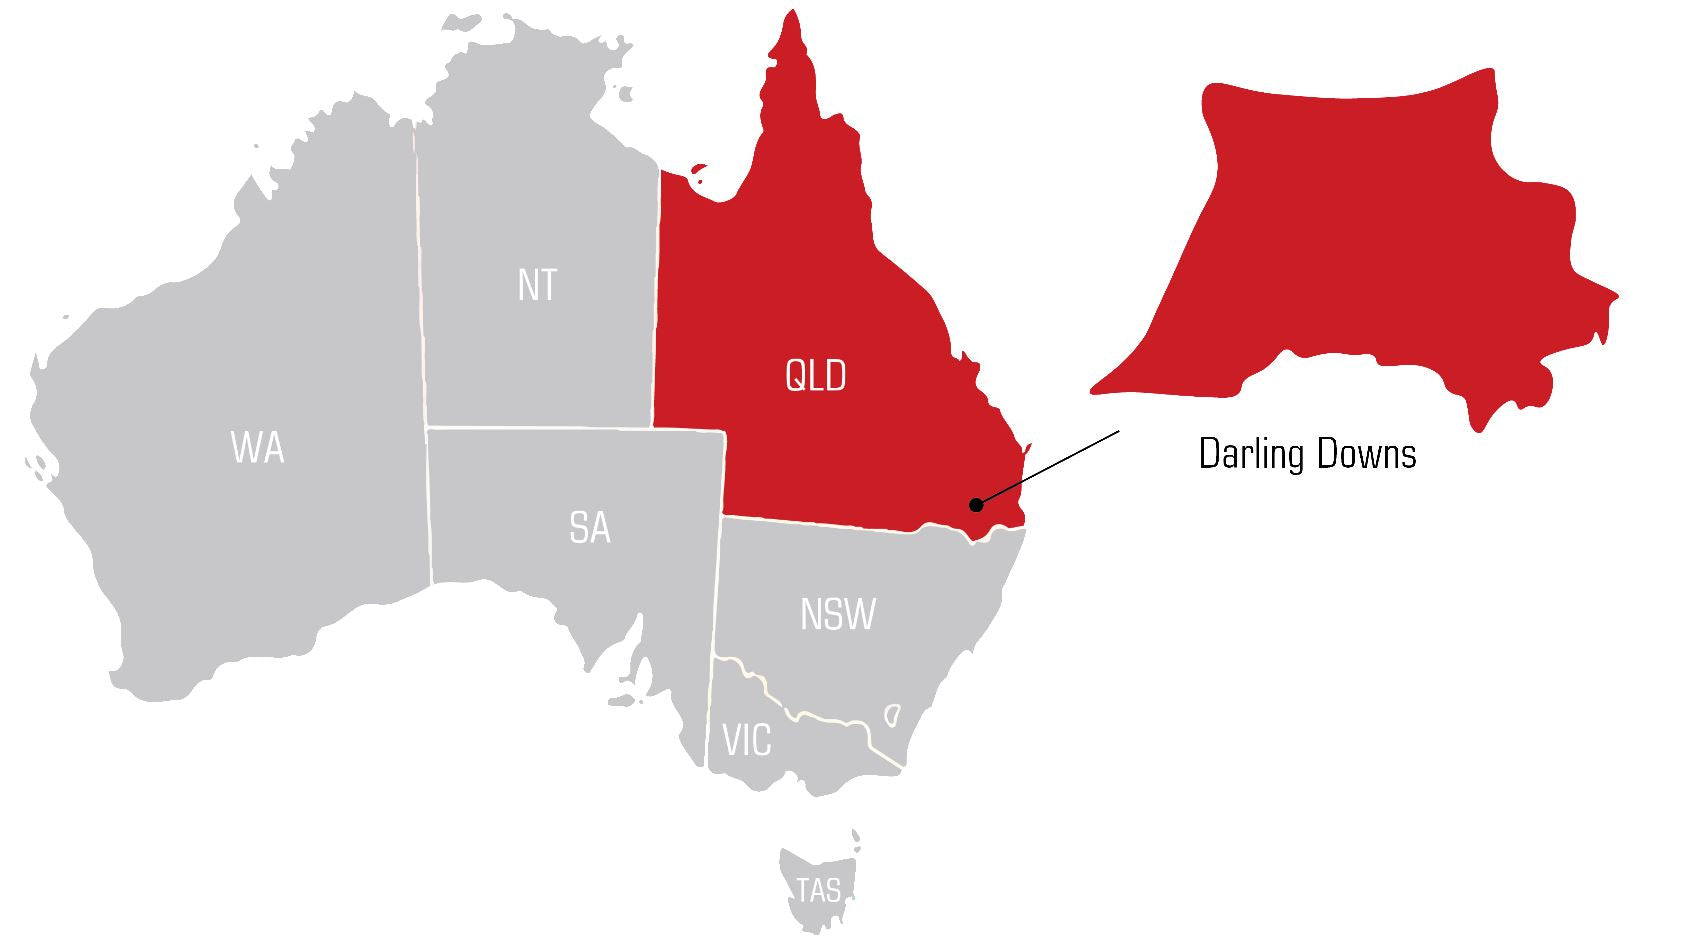 Toowoomba and darling downs Welding Supplies map